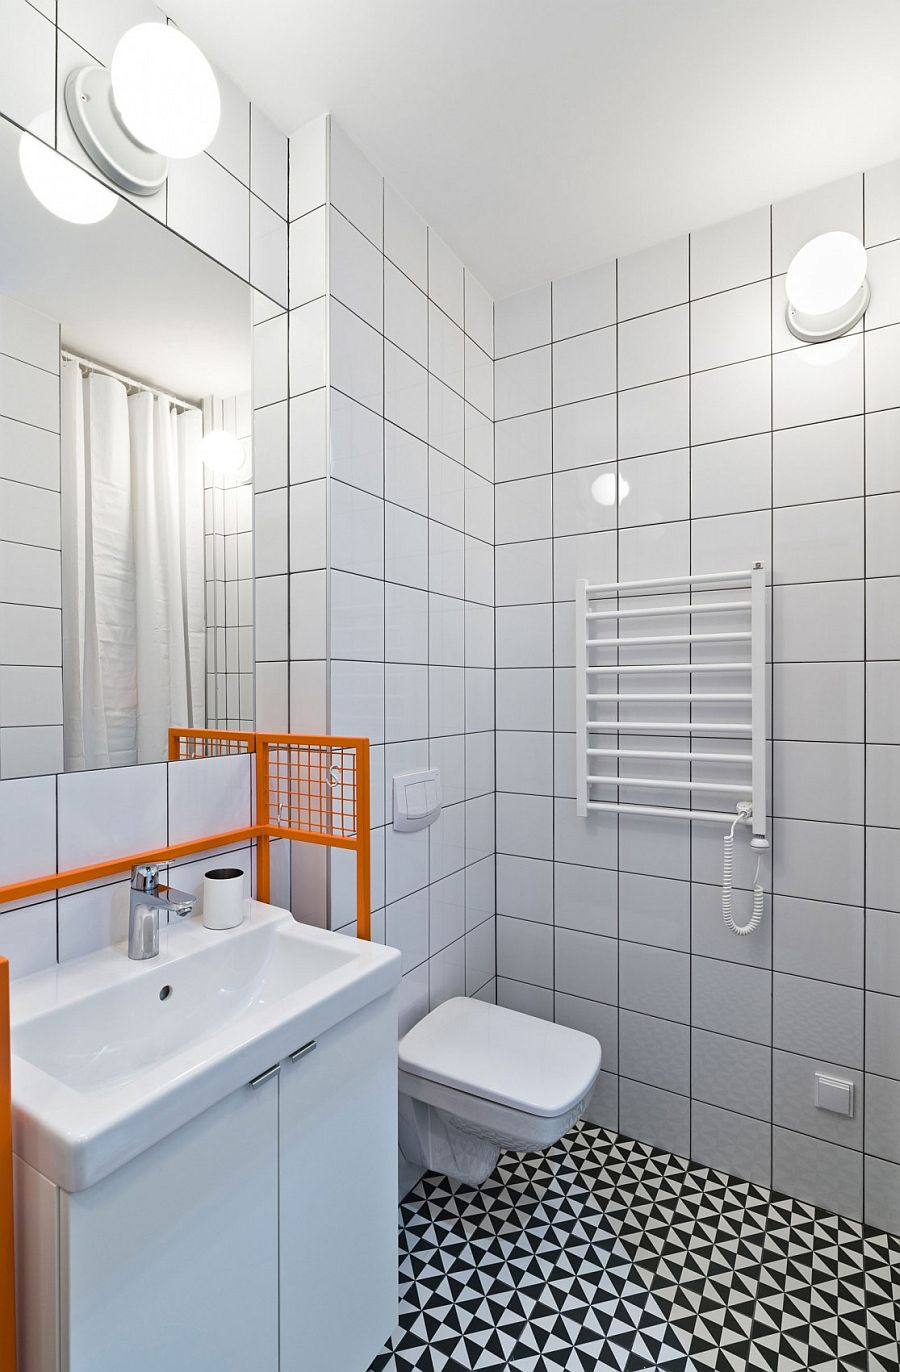 Black, white and gray shape a stylish, small bathroom inside the Poznan apartment